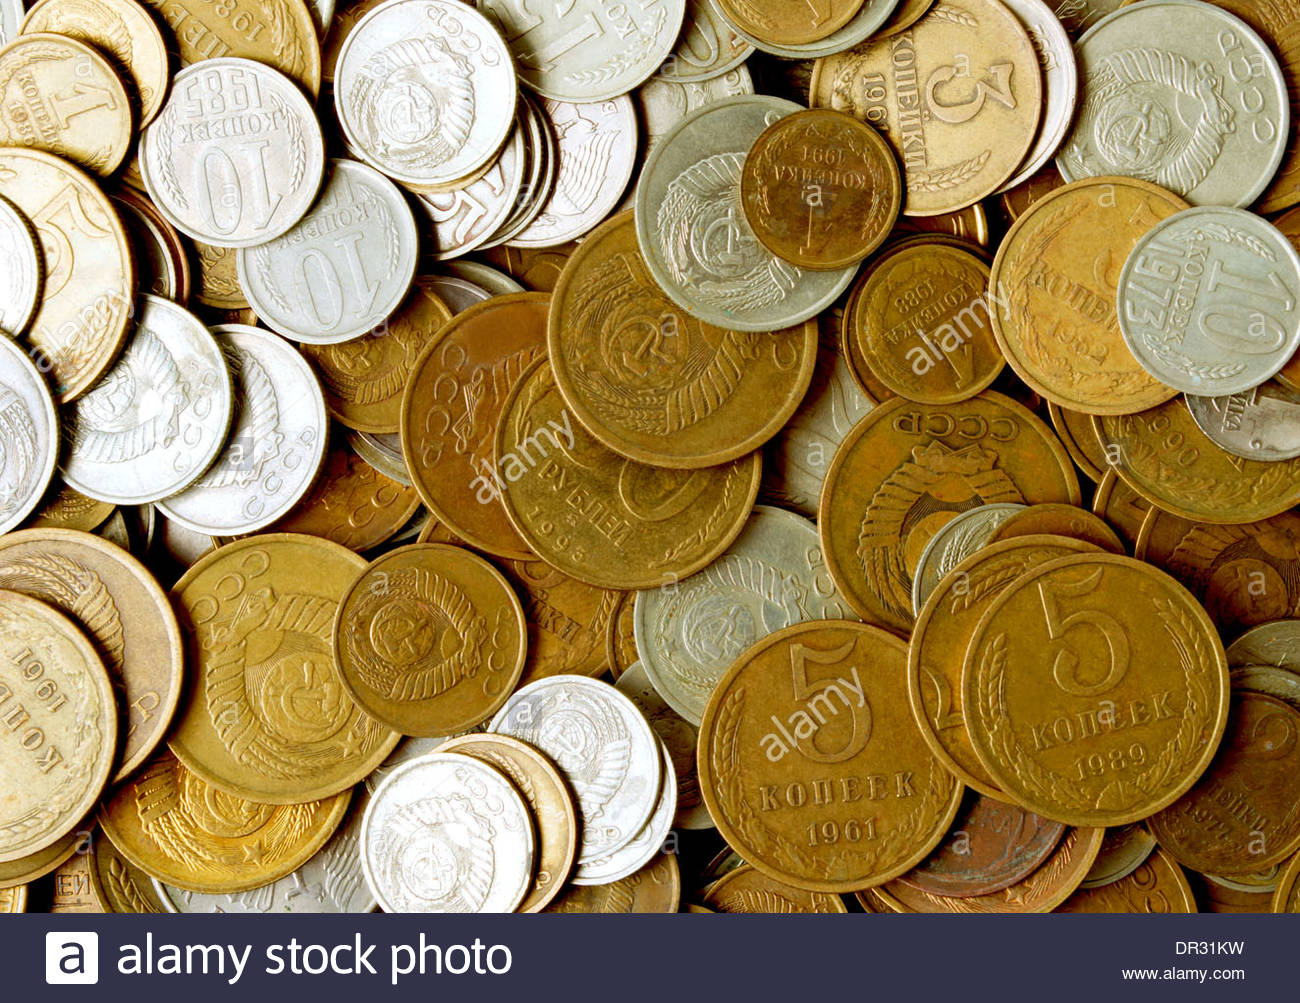 Russian coins of the Soviet period. - Stock Image